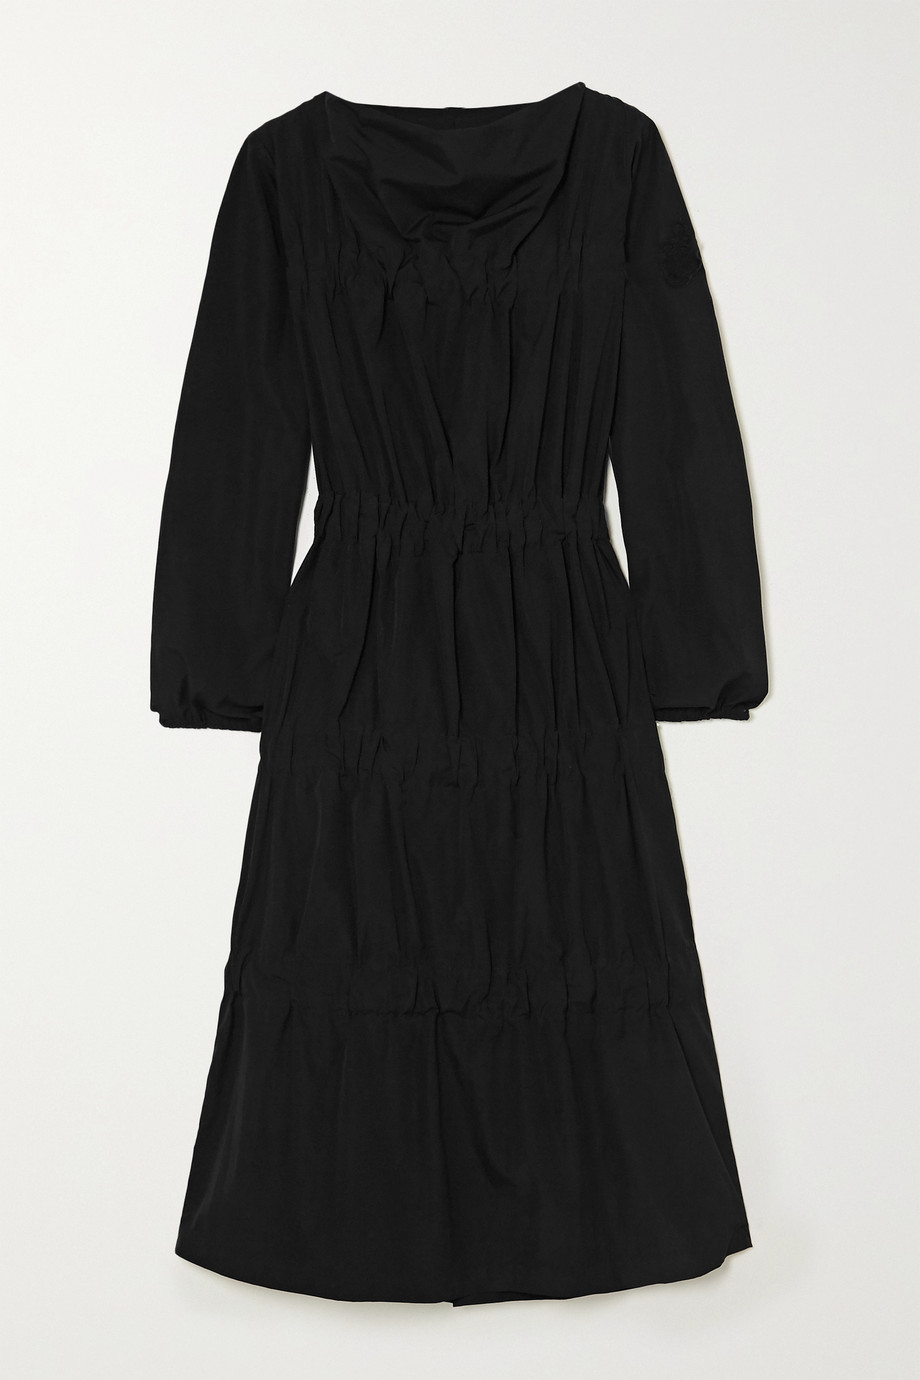 Moncler Genius + 1 JW Anderson tiered ruched poplin dress